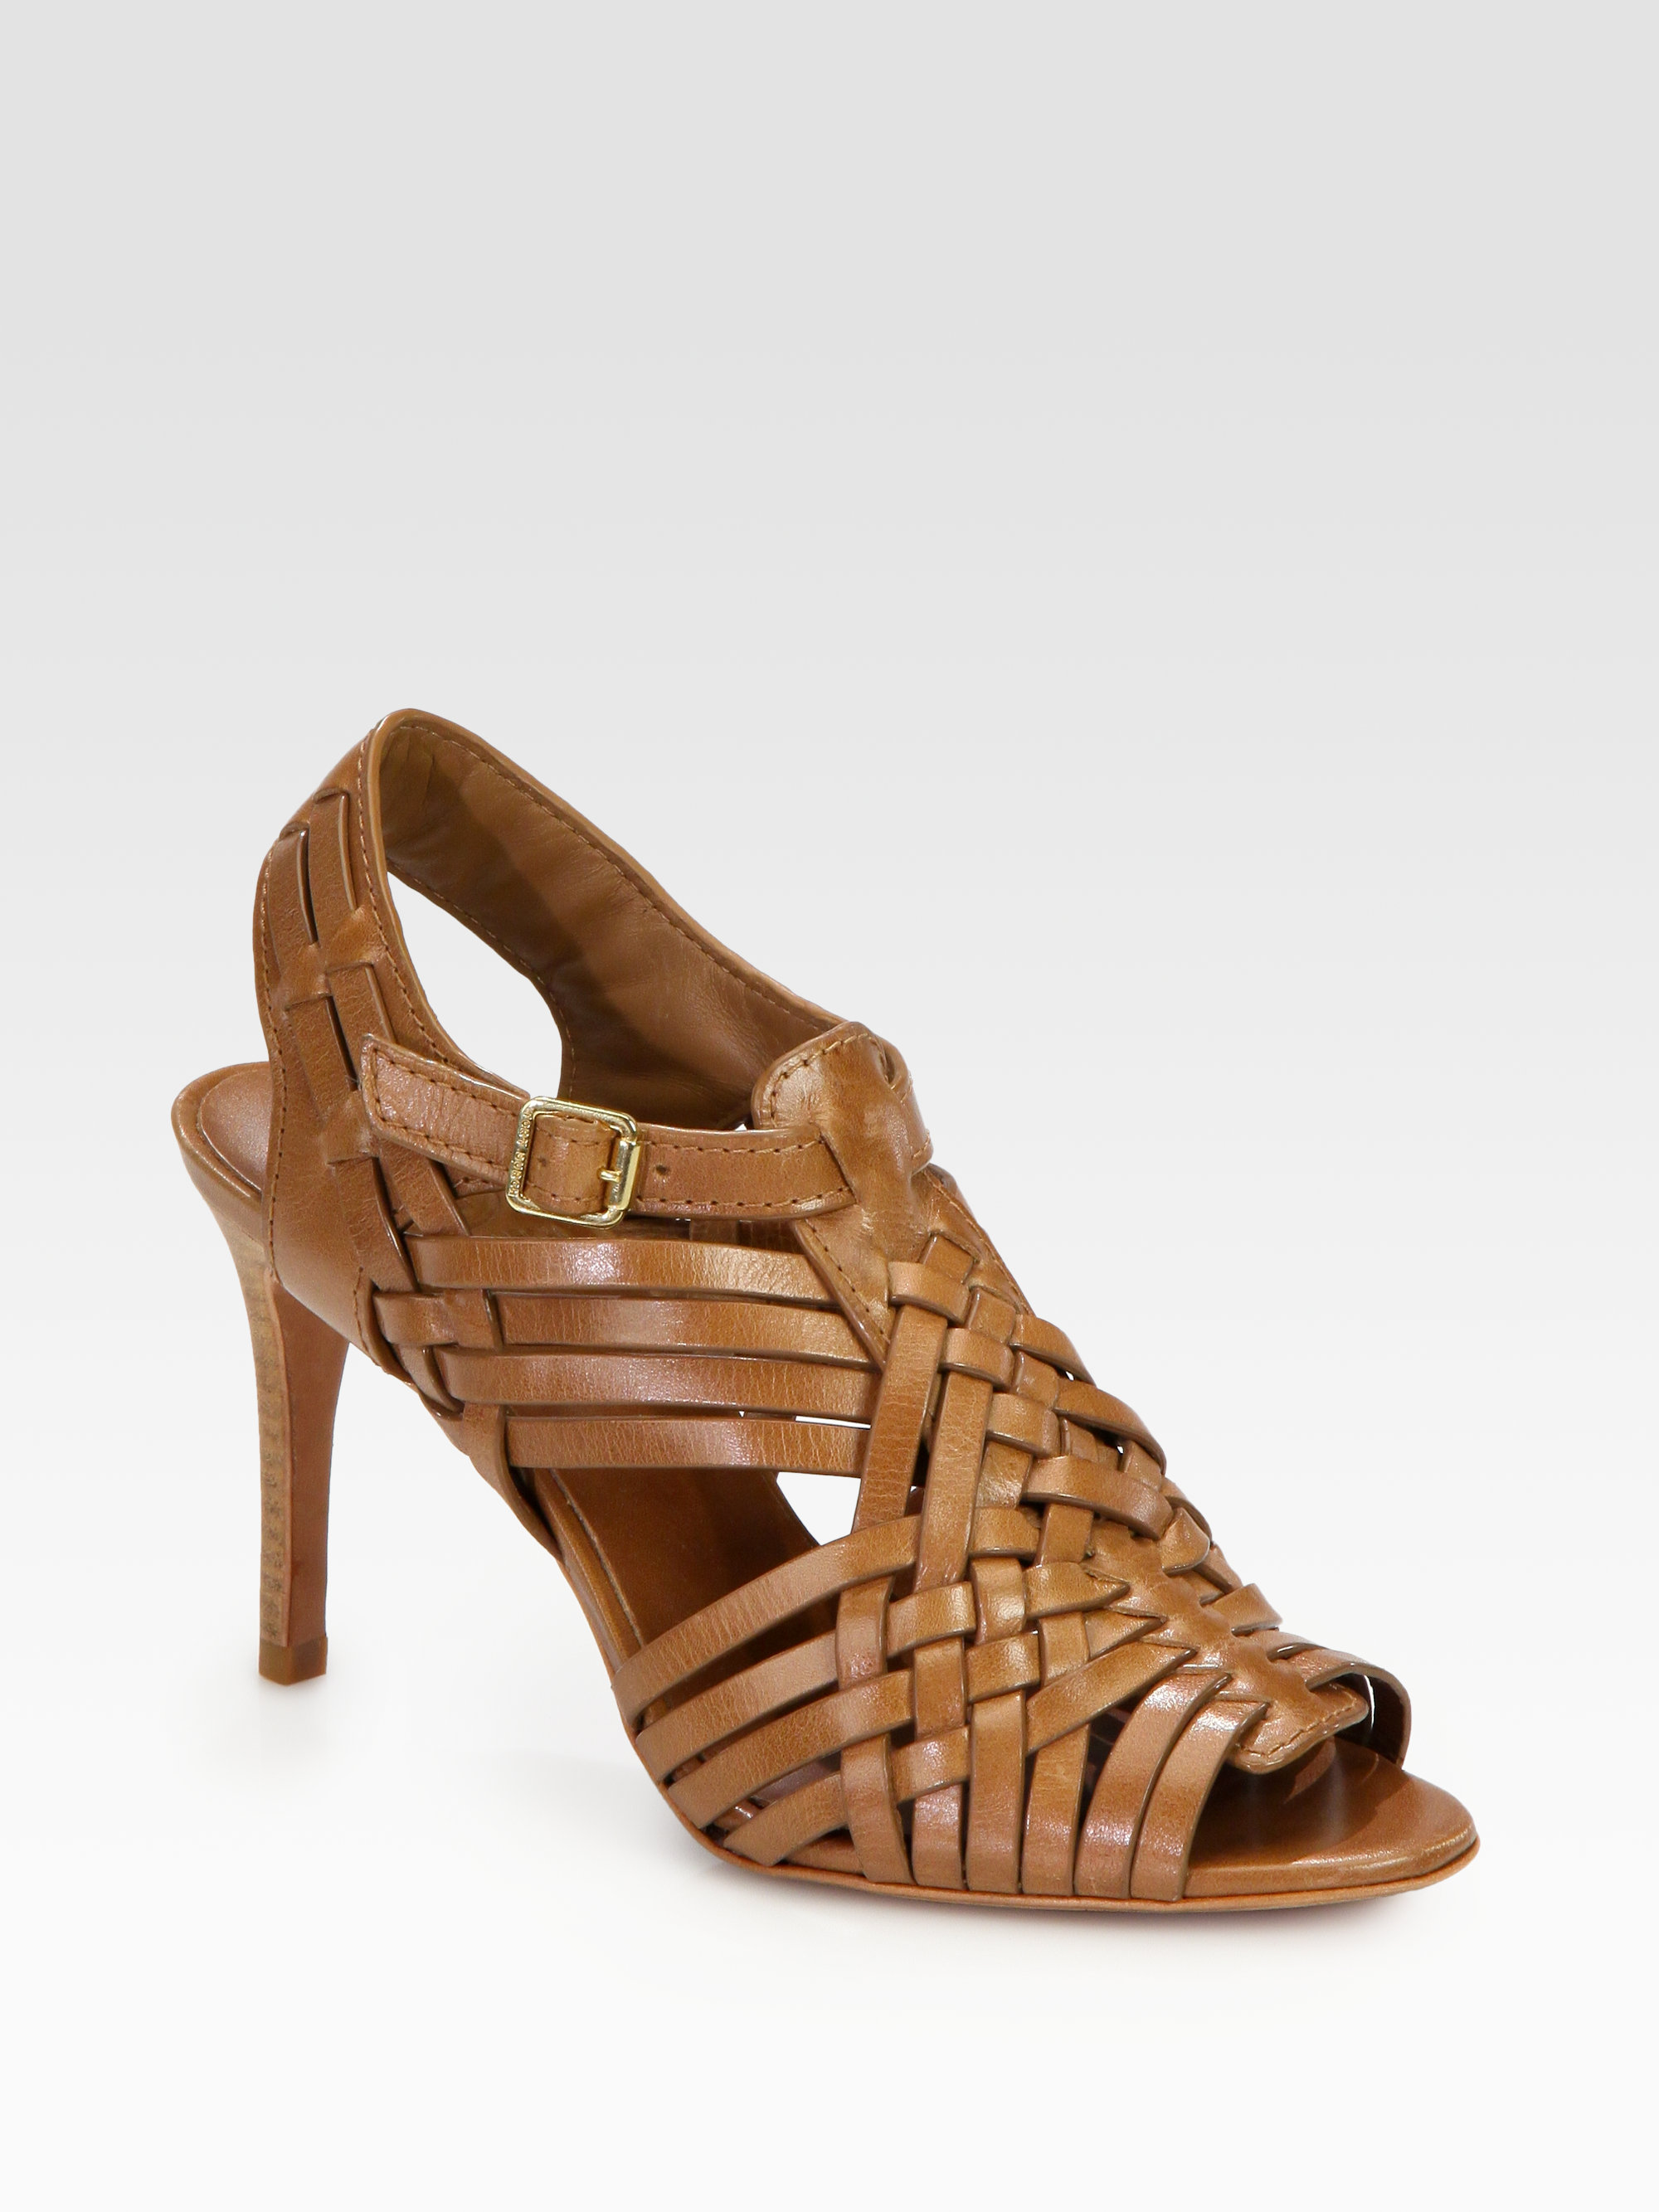 64a0fd10d1cc Lyst - Tory Burch Nadia Woven Leather Sandals in Brown